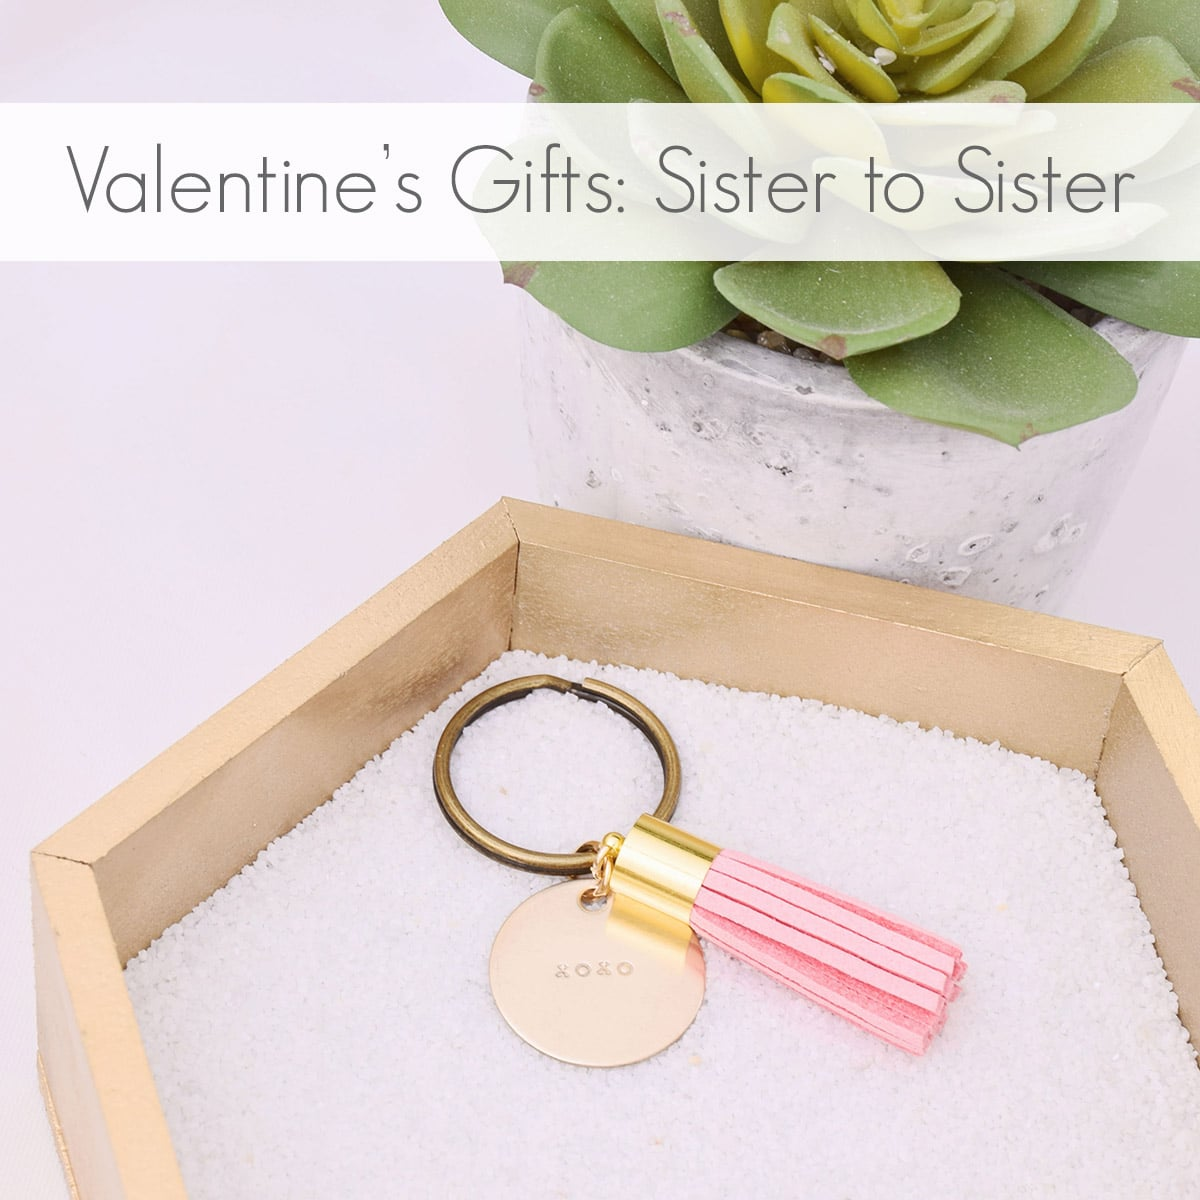 Top 4 Valentineu0027s Gifts: Sister To Sister